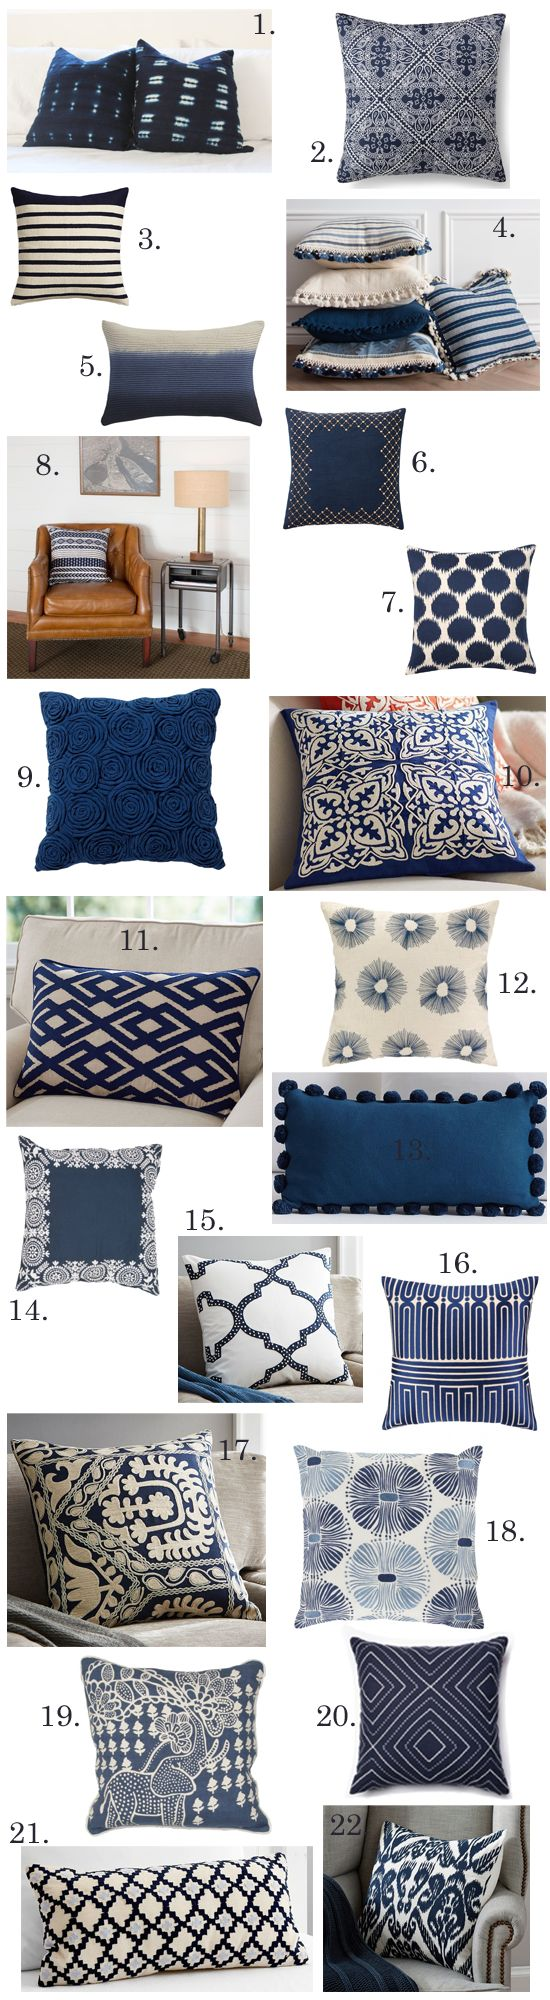 best 20+ navy blue couches ideas on pinterest | blue living room